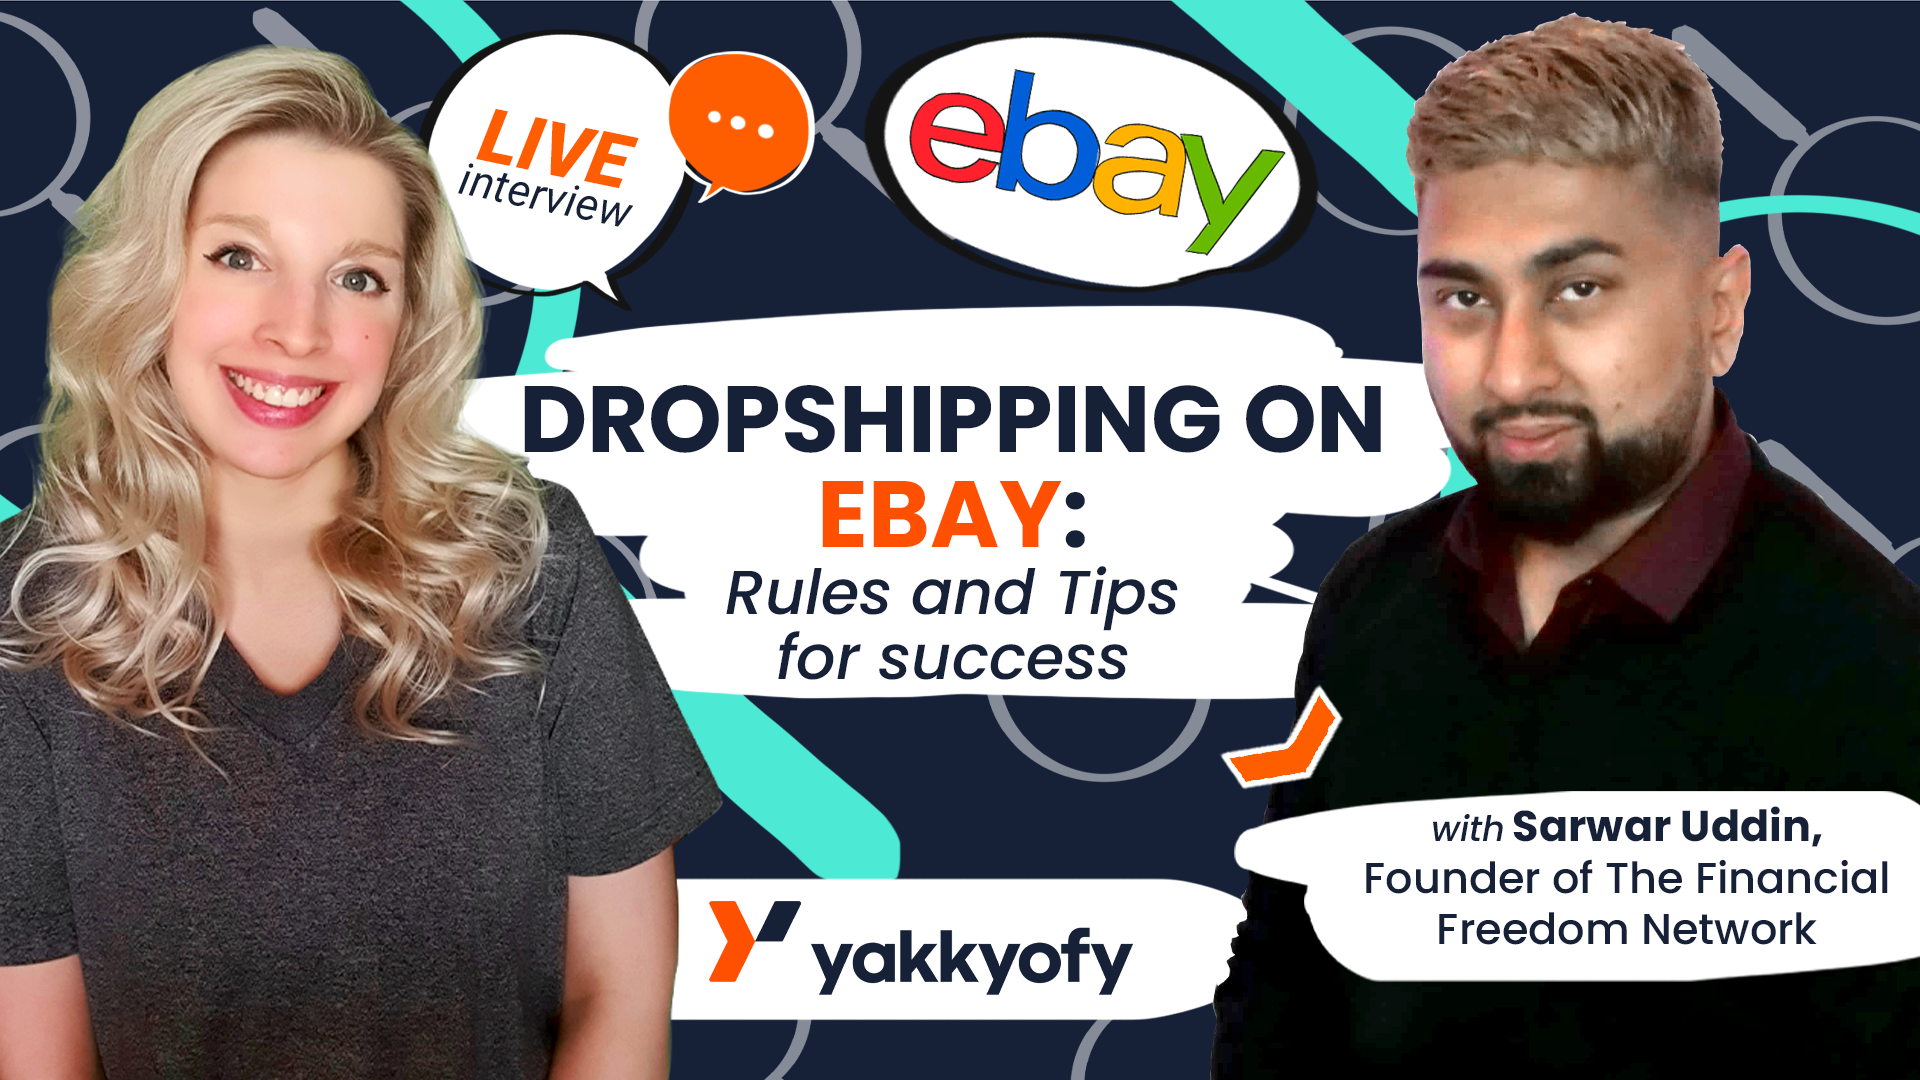 Dropshipping with eBay